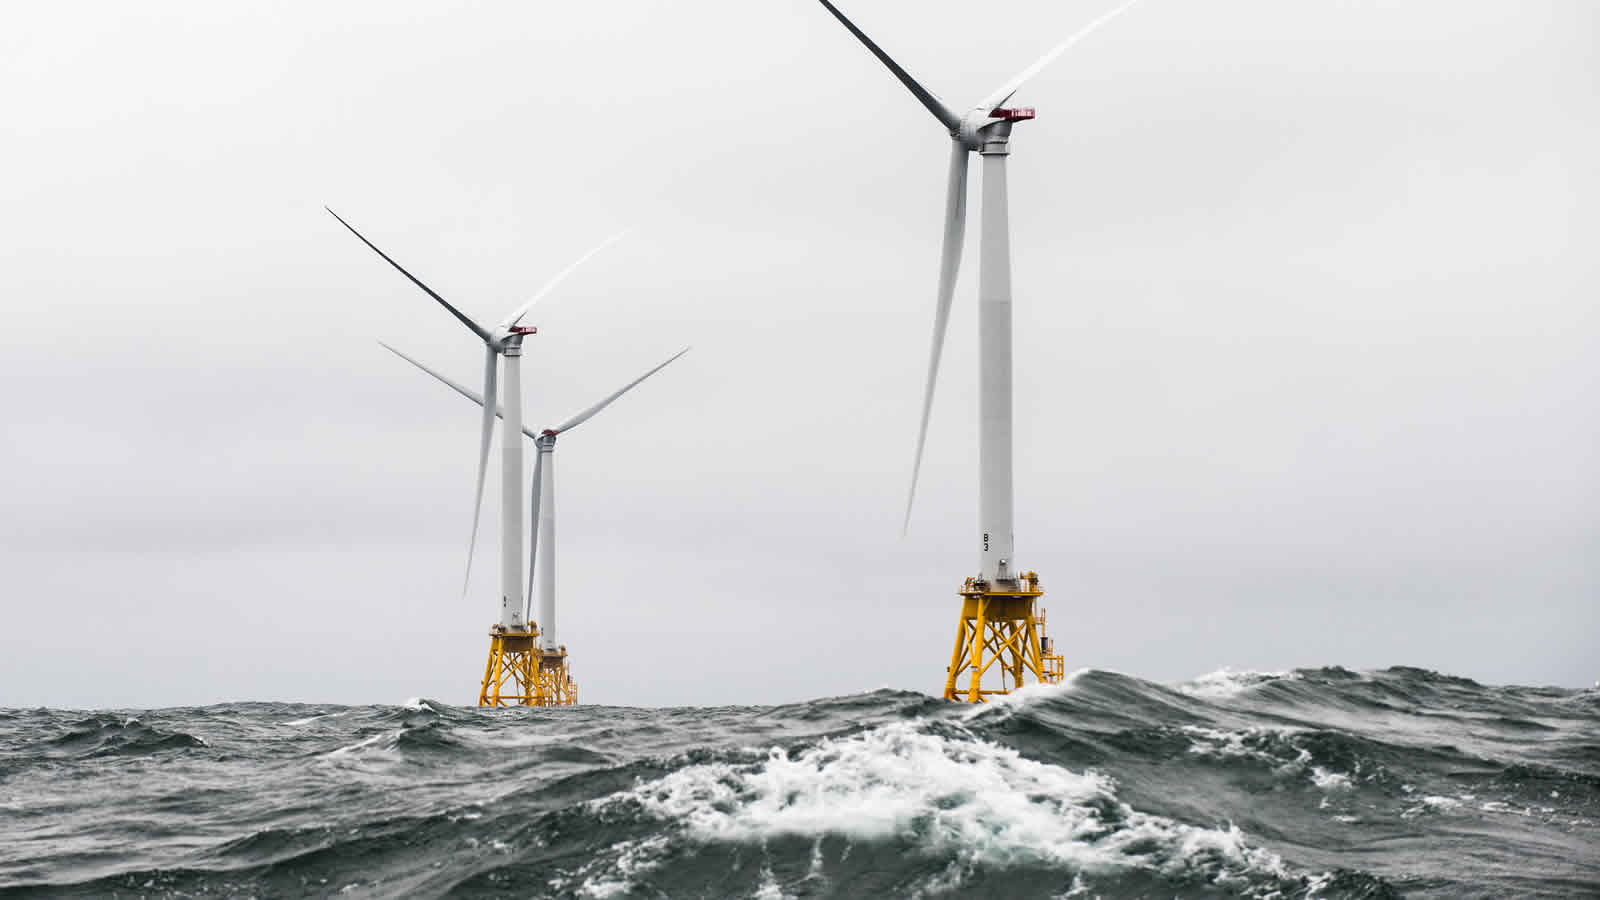 <h4>America's First Offshore Wind Farm</h4><h5>Block Island (R.I.) Wind Farm, December 2016</h5><em>U.S. Dept of Energy Photo</em>